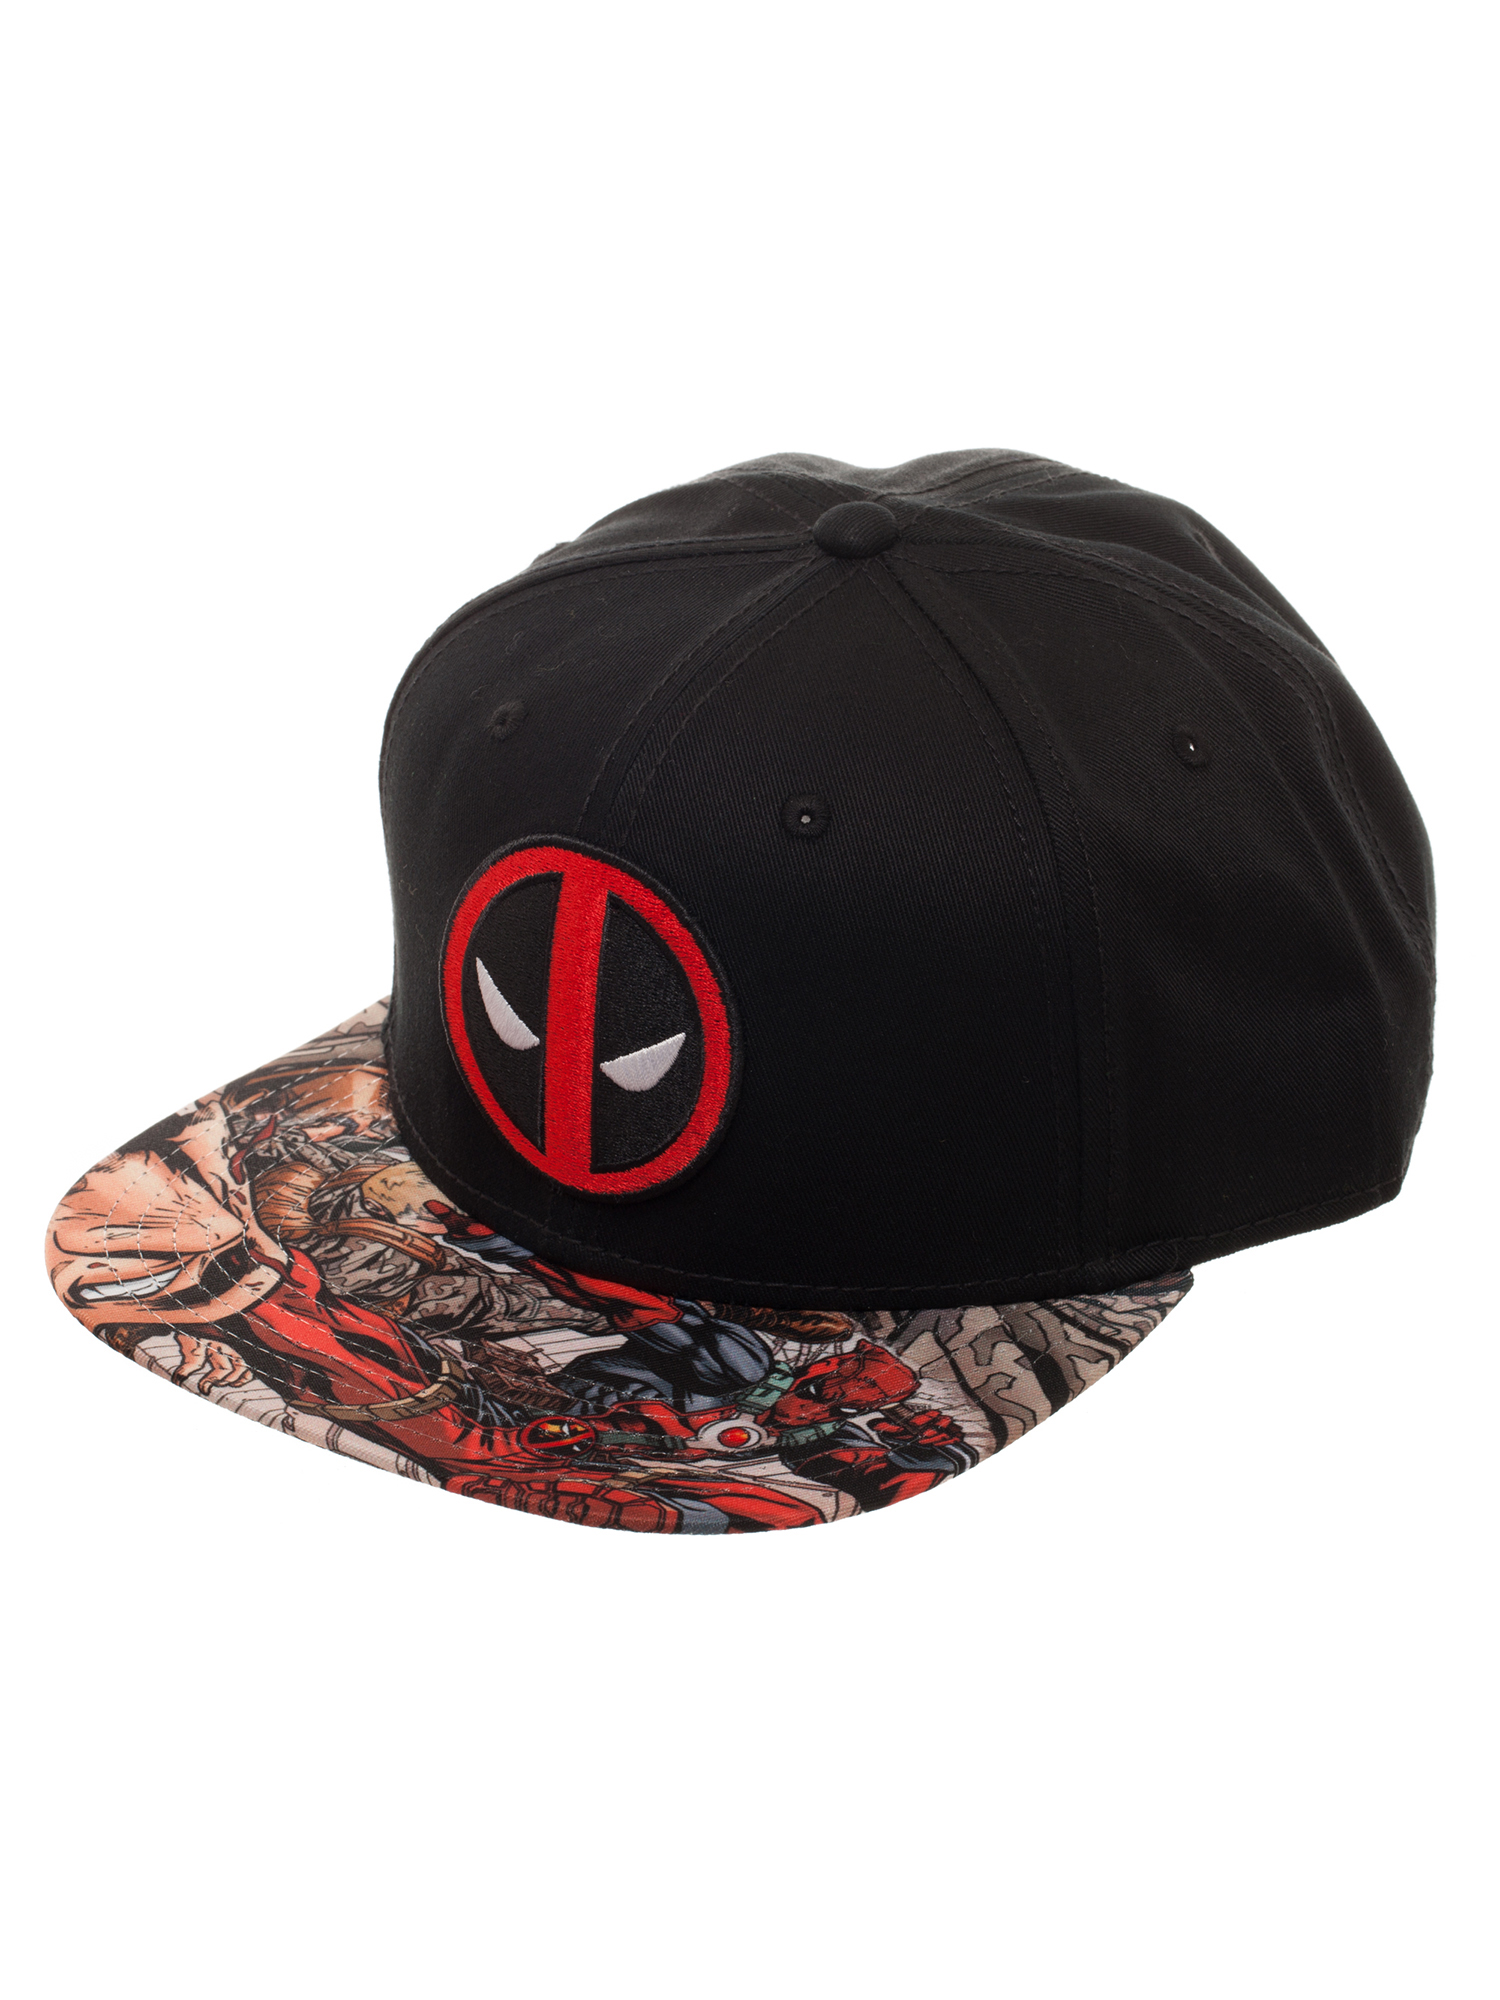 Deadpool Embroidered Snapback Hat with Comic Book Print Sublimated Flat Bill f823bdbb570